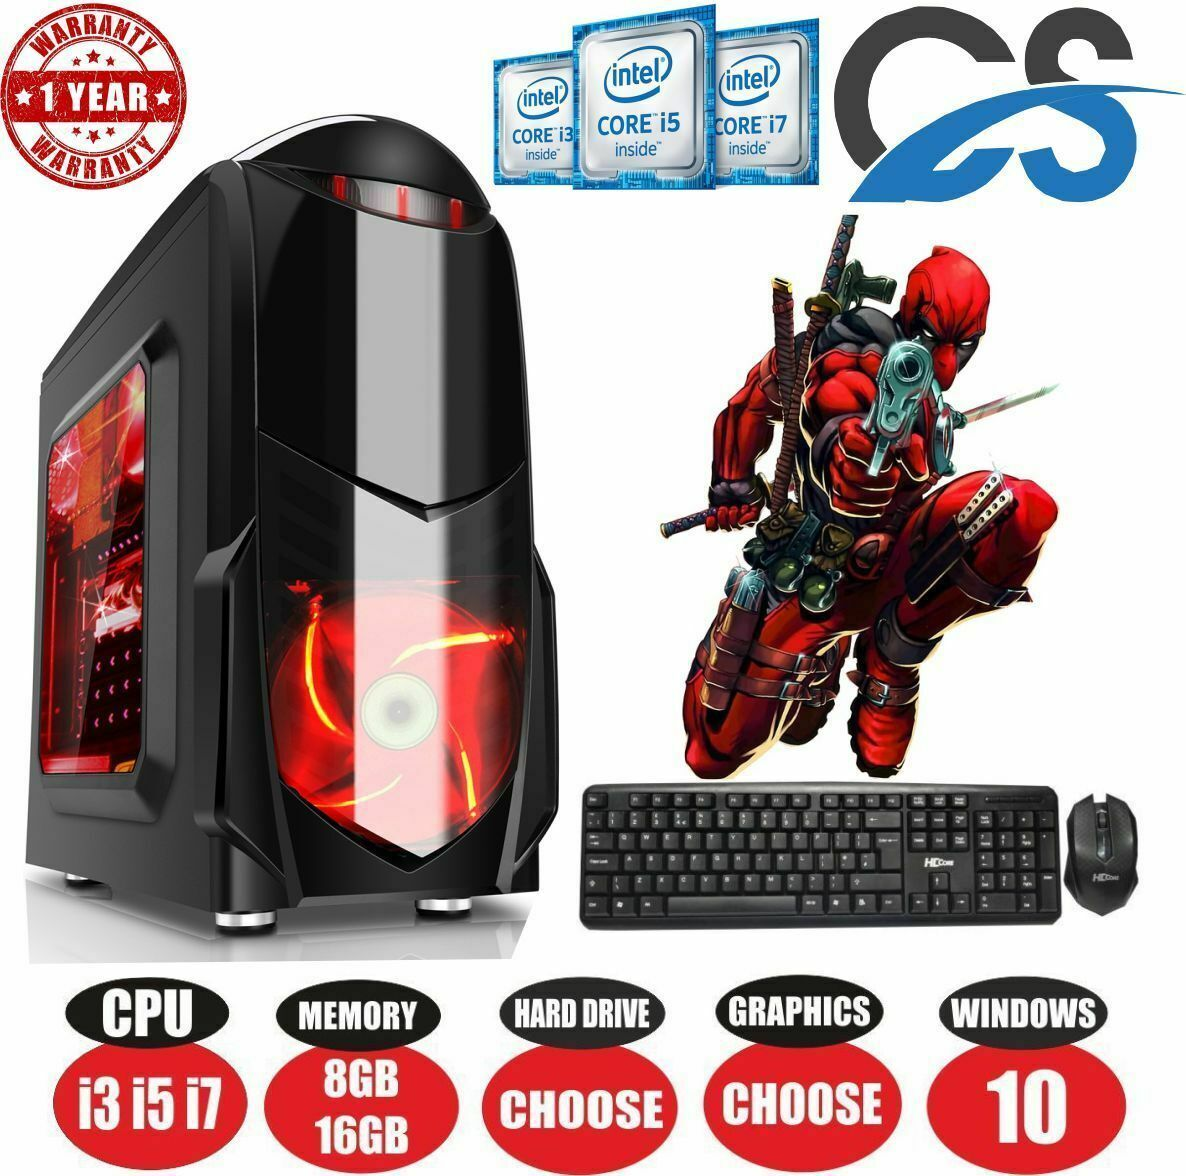 Computer Games - ULTRA FAST i3 i5 i7 Desktop Computer Gaming PC 1TB 16GB RAM GTX 1660 Windows 10